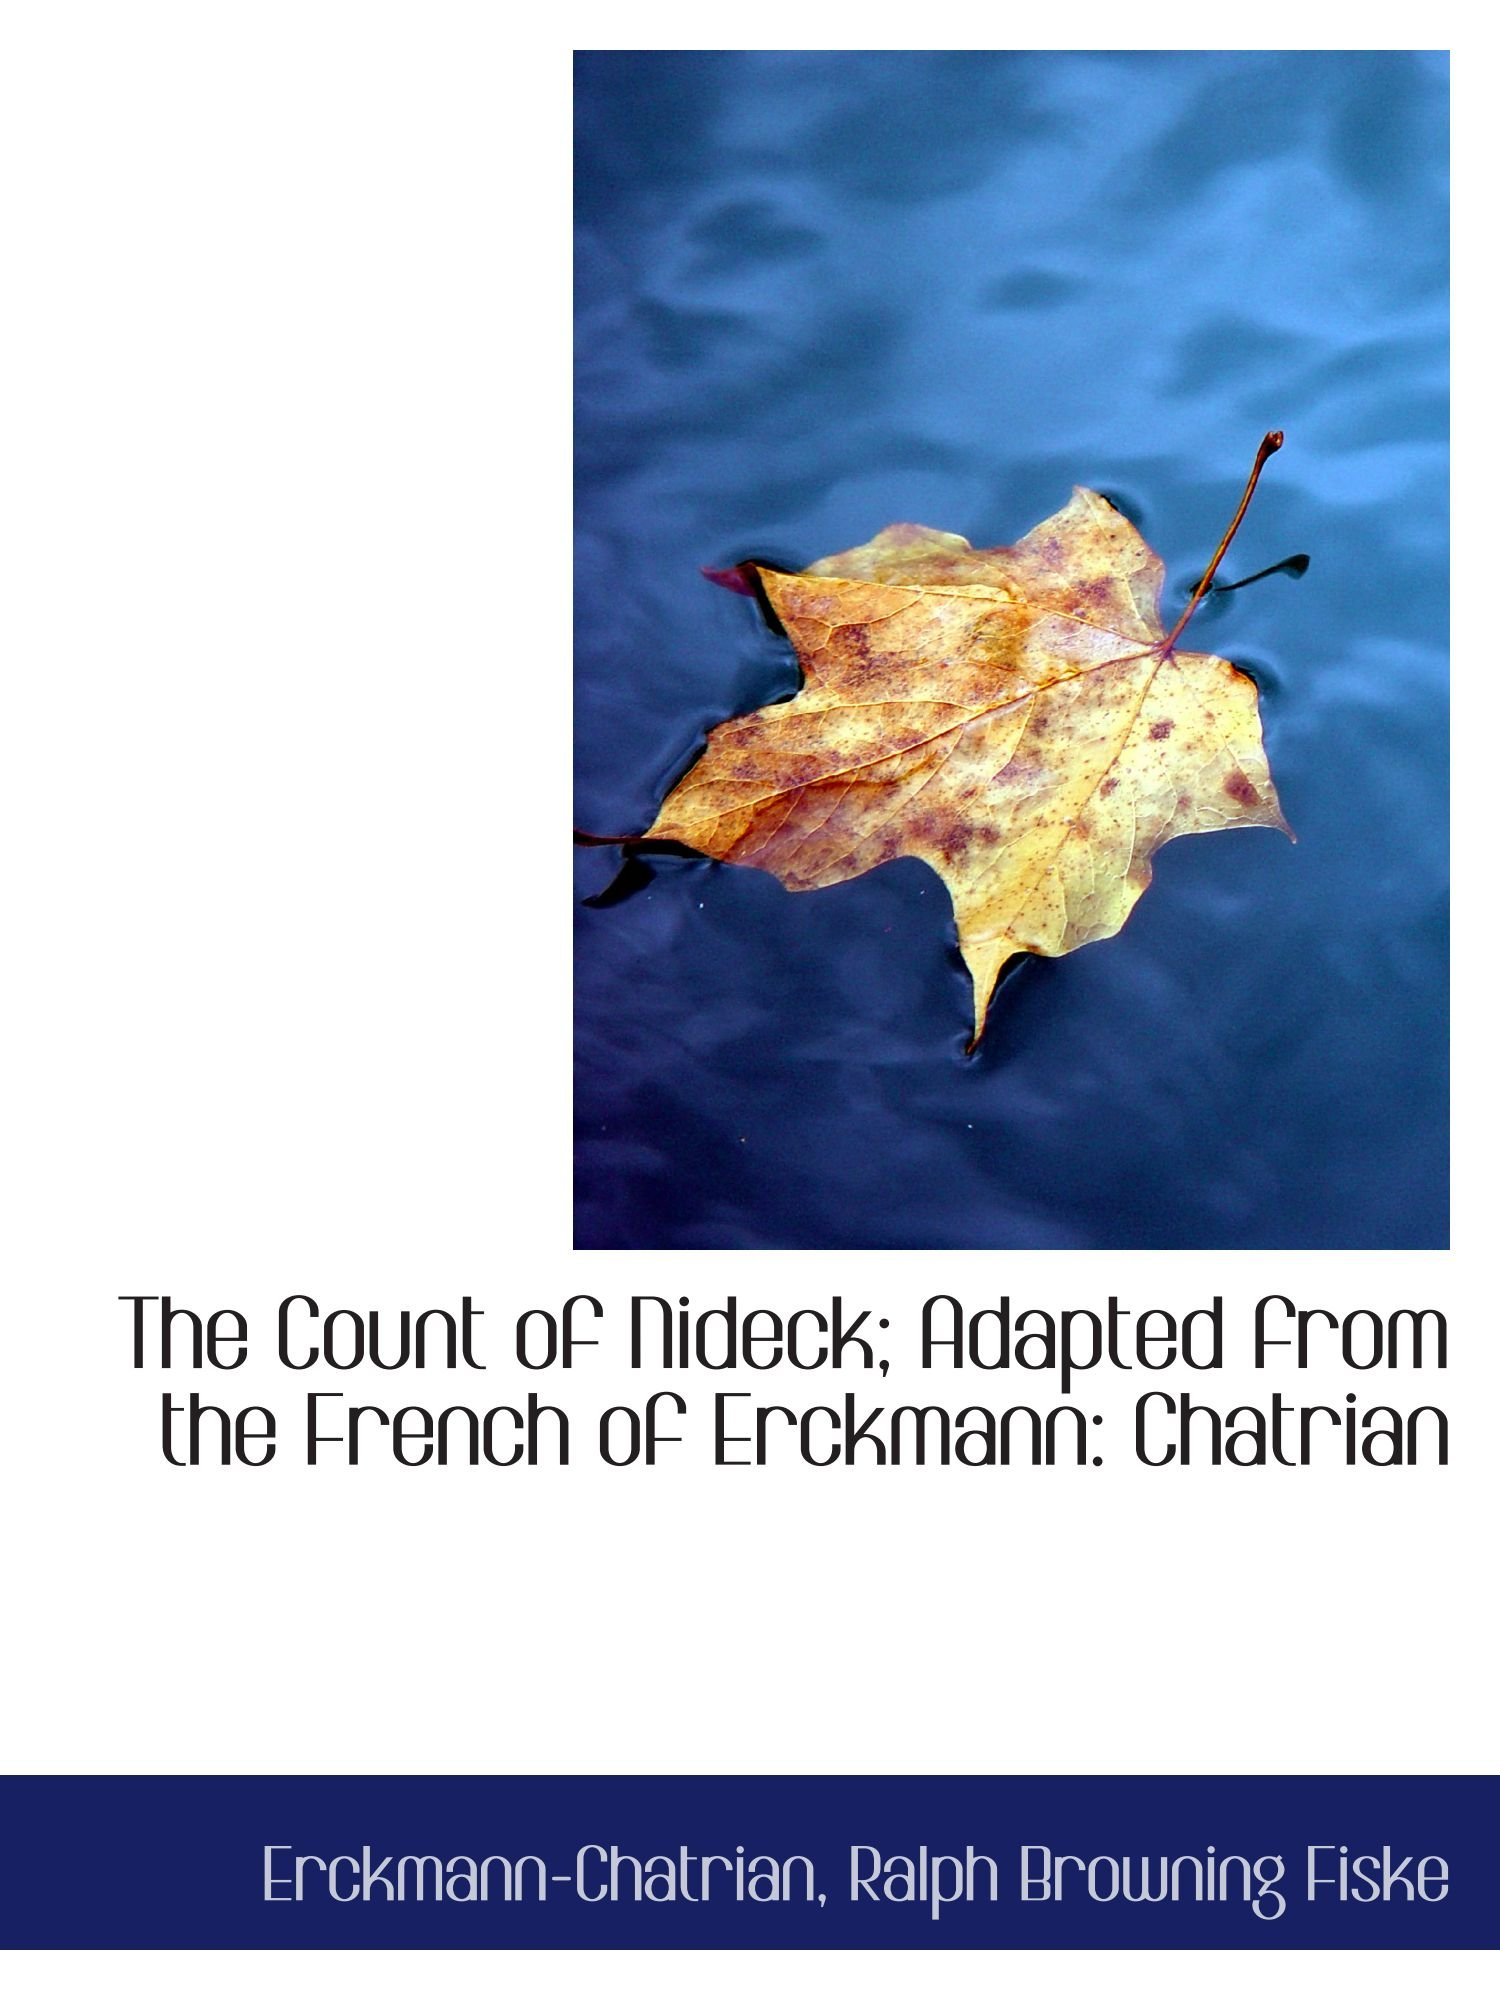 Download The Count of Nideck; Adapted from the French of Erckmann: Chatrian PDF